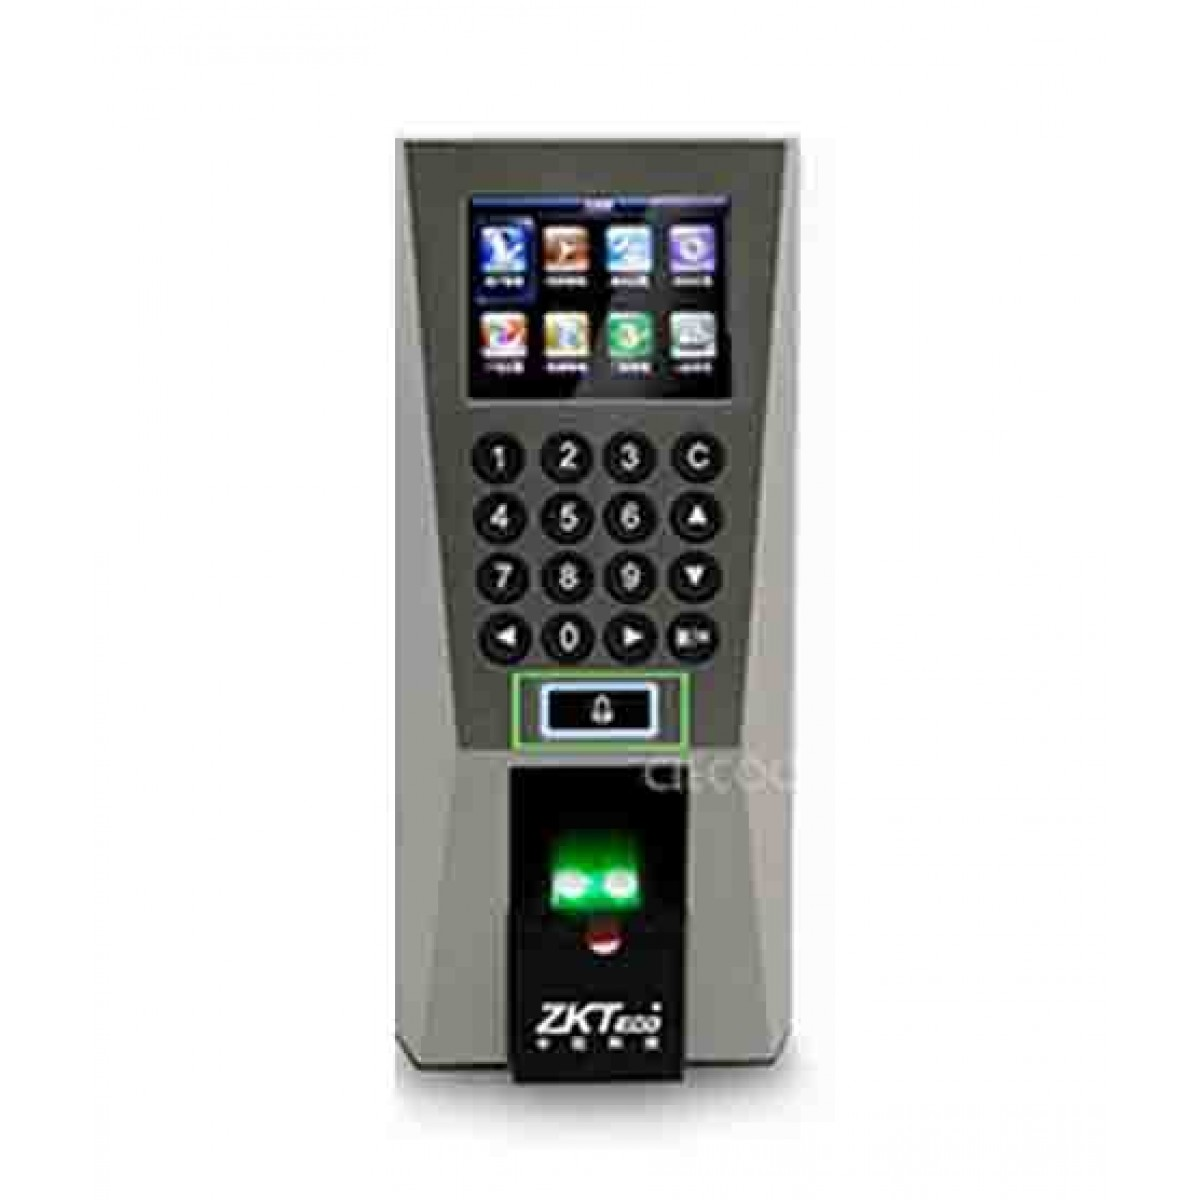 ZKTeco Biometric Fingerprint Access Control And Door Security System (F18)